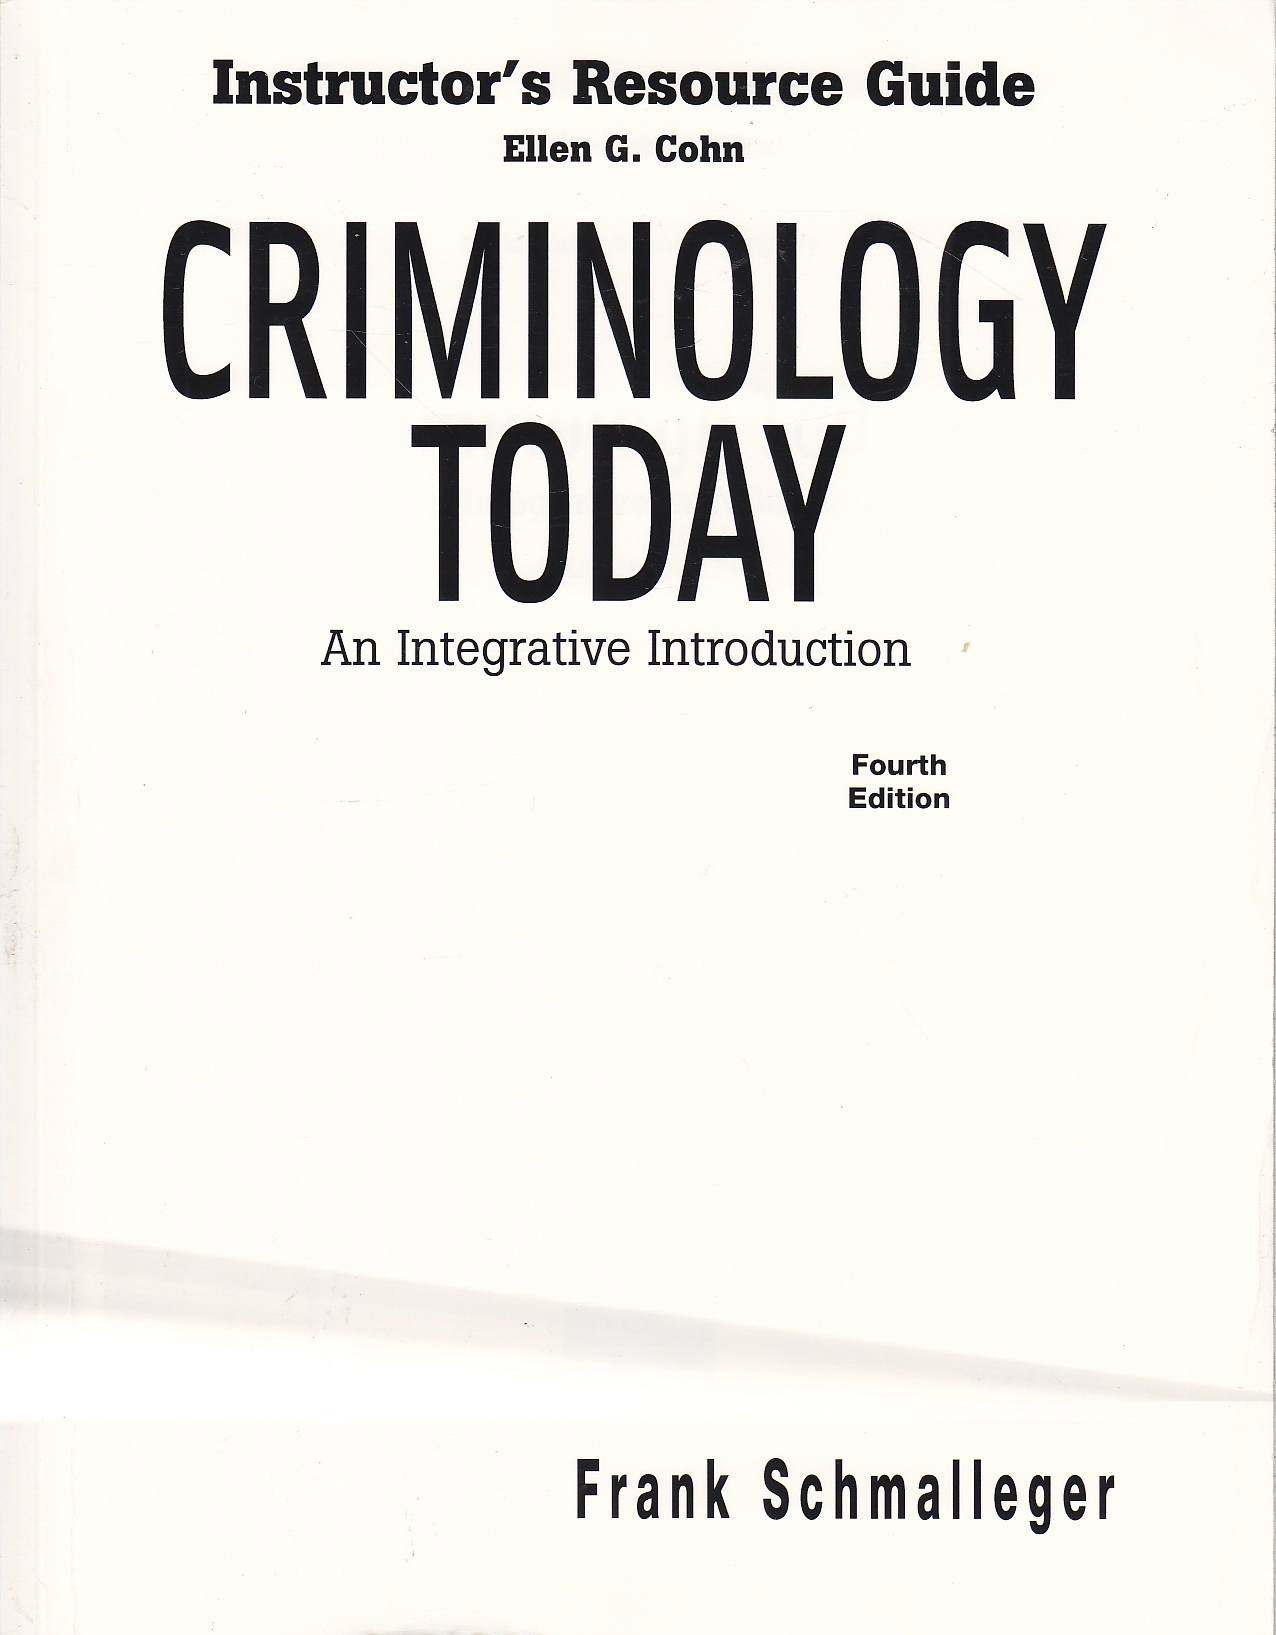 Image for Instructor's Resource Guide Criminology Today An Integrative Introduction